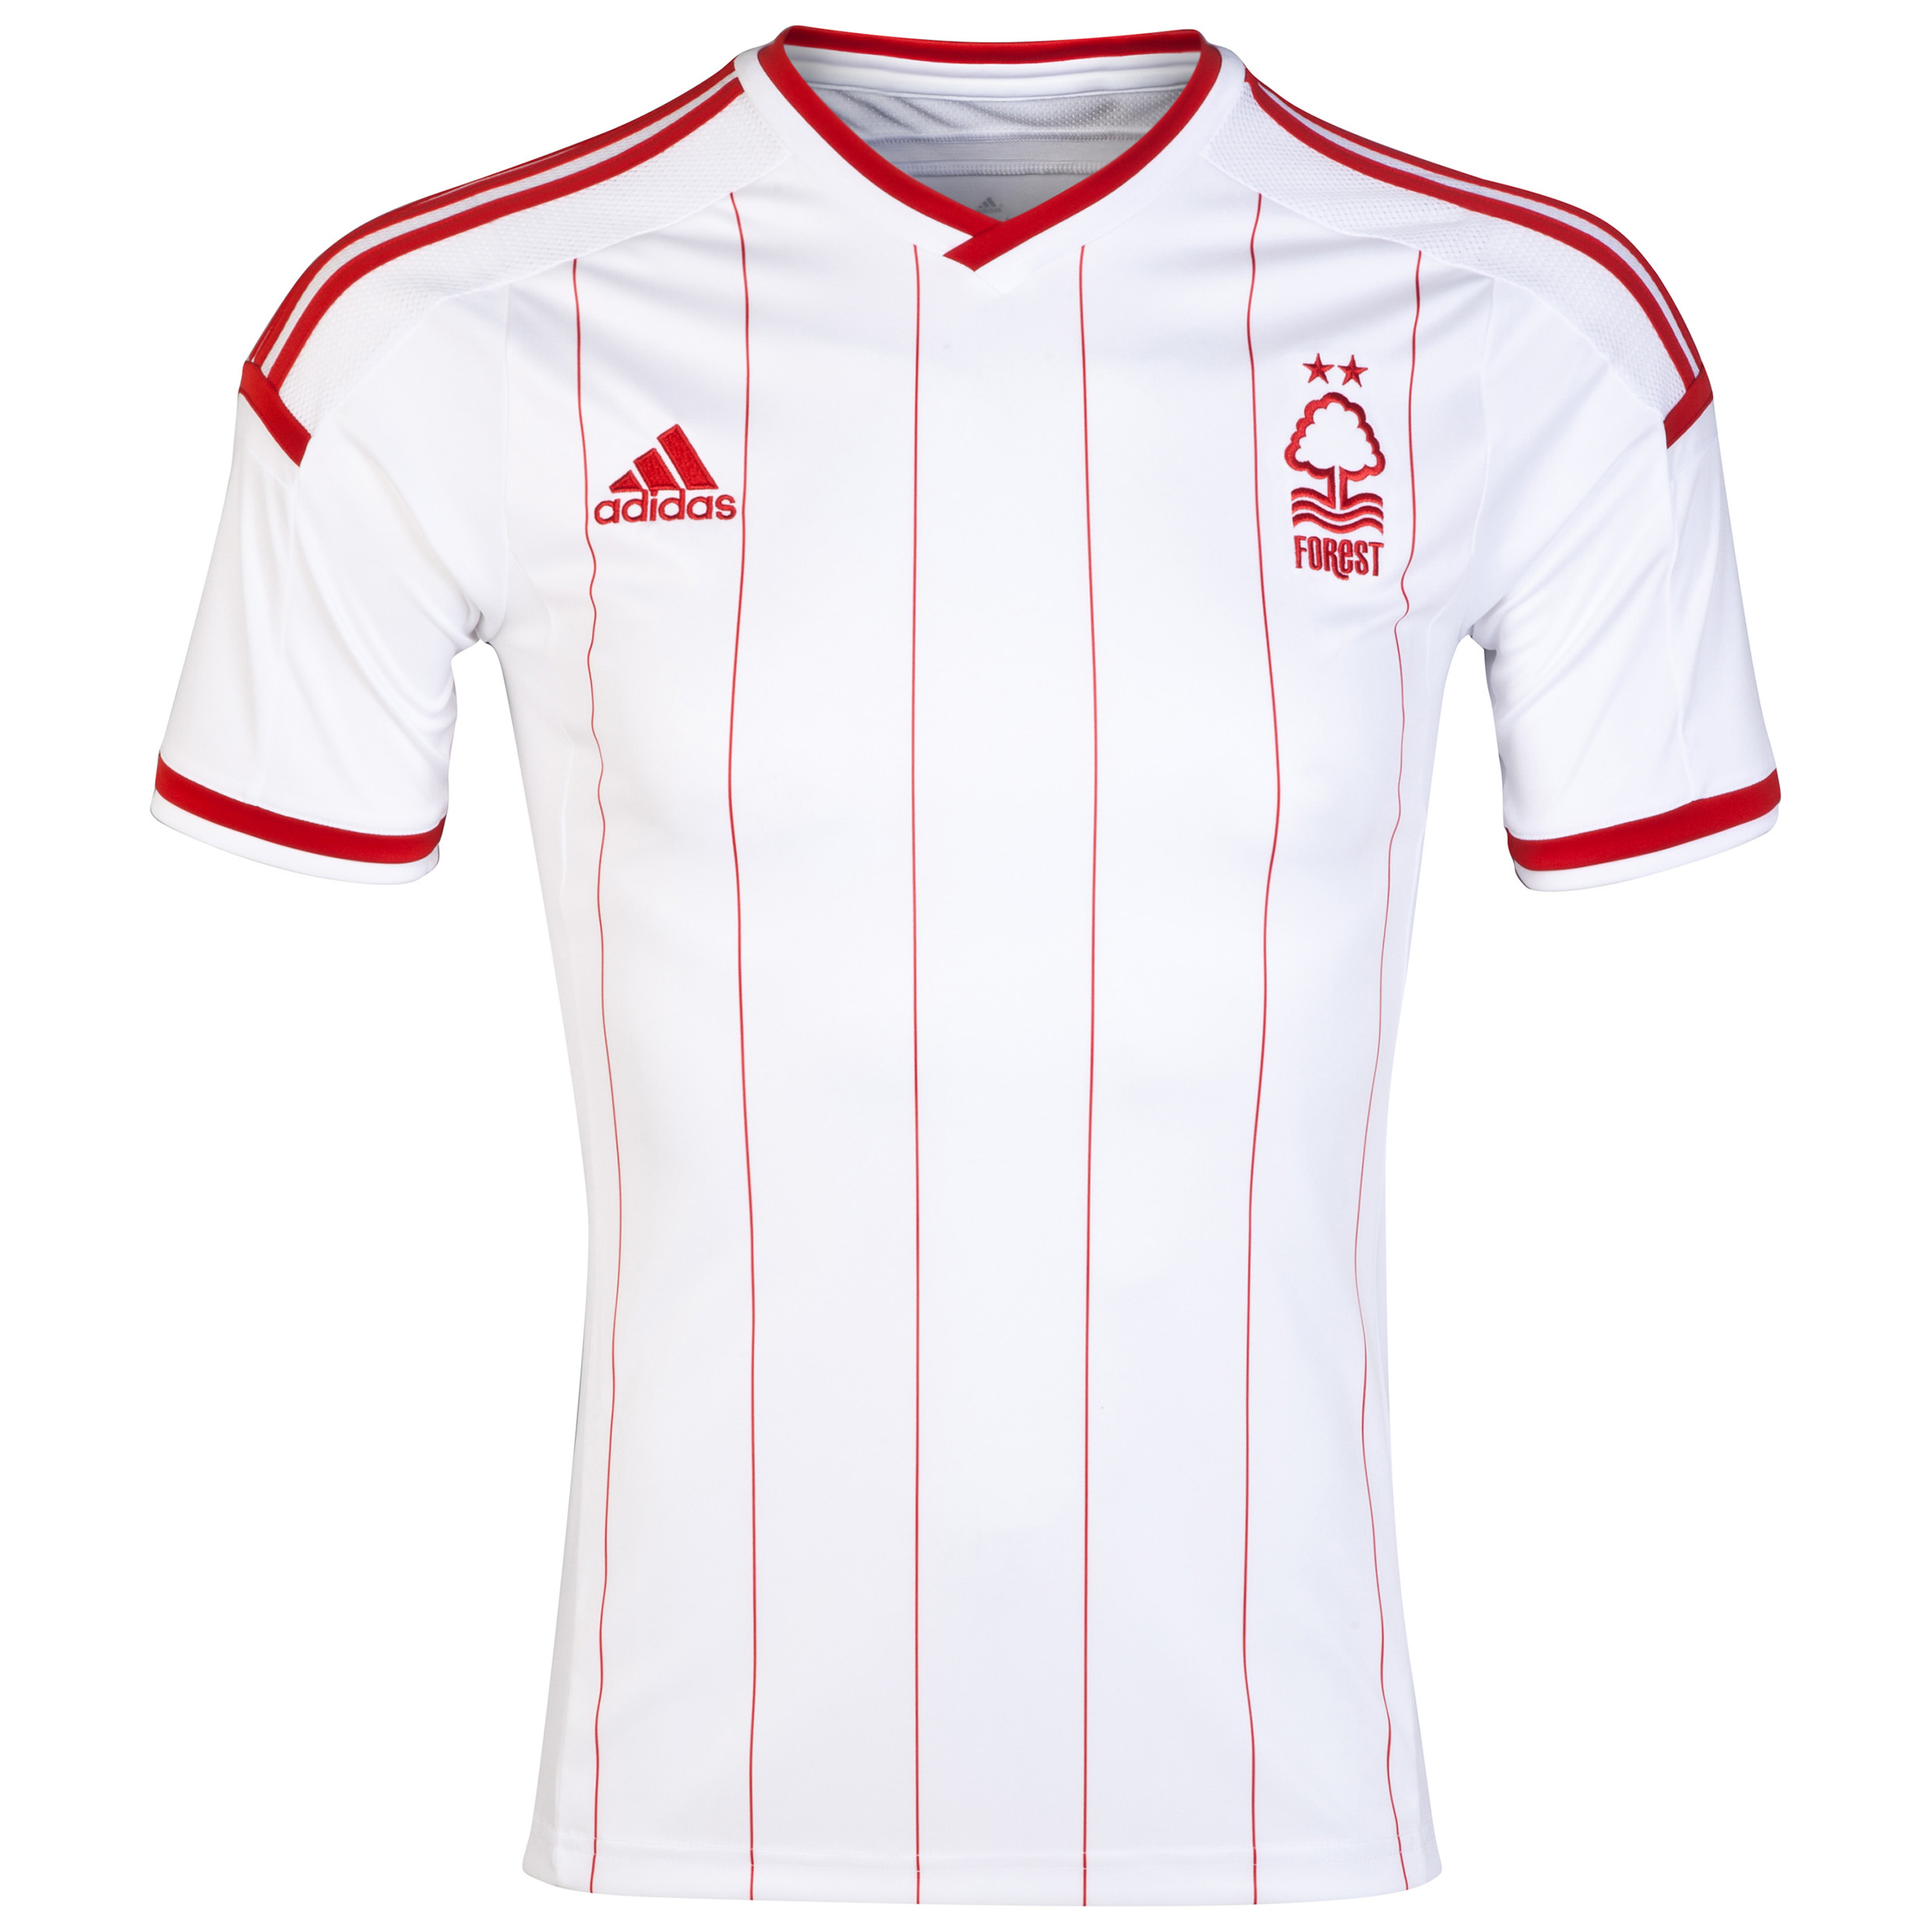 Nottingham Forest Away Shirt 2014/15 White